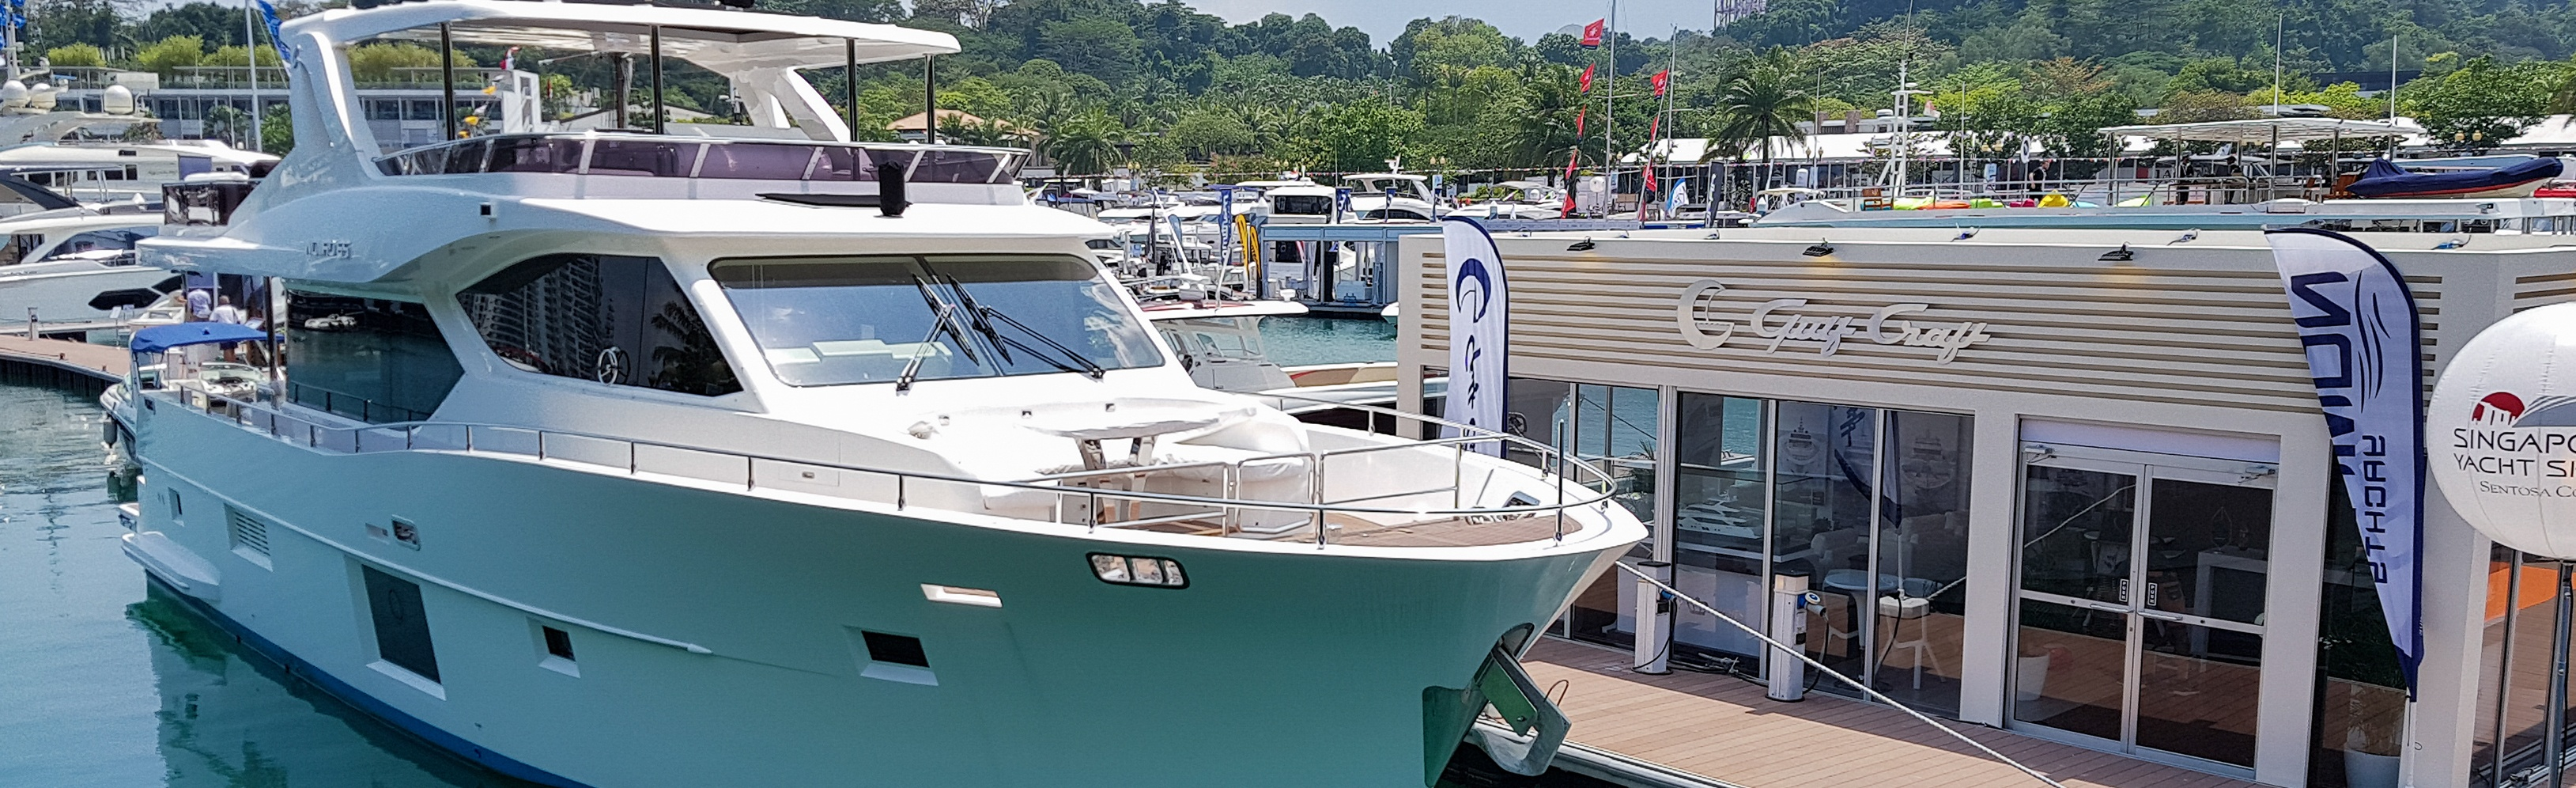 Gulf-Craft,-Singapore-Yacht-Show-2018